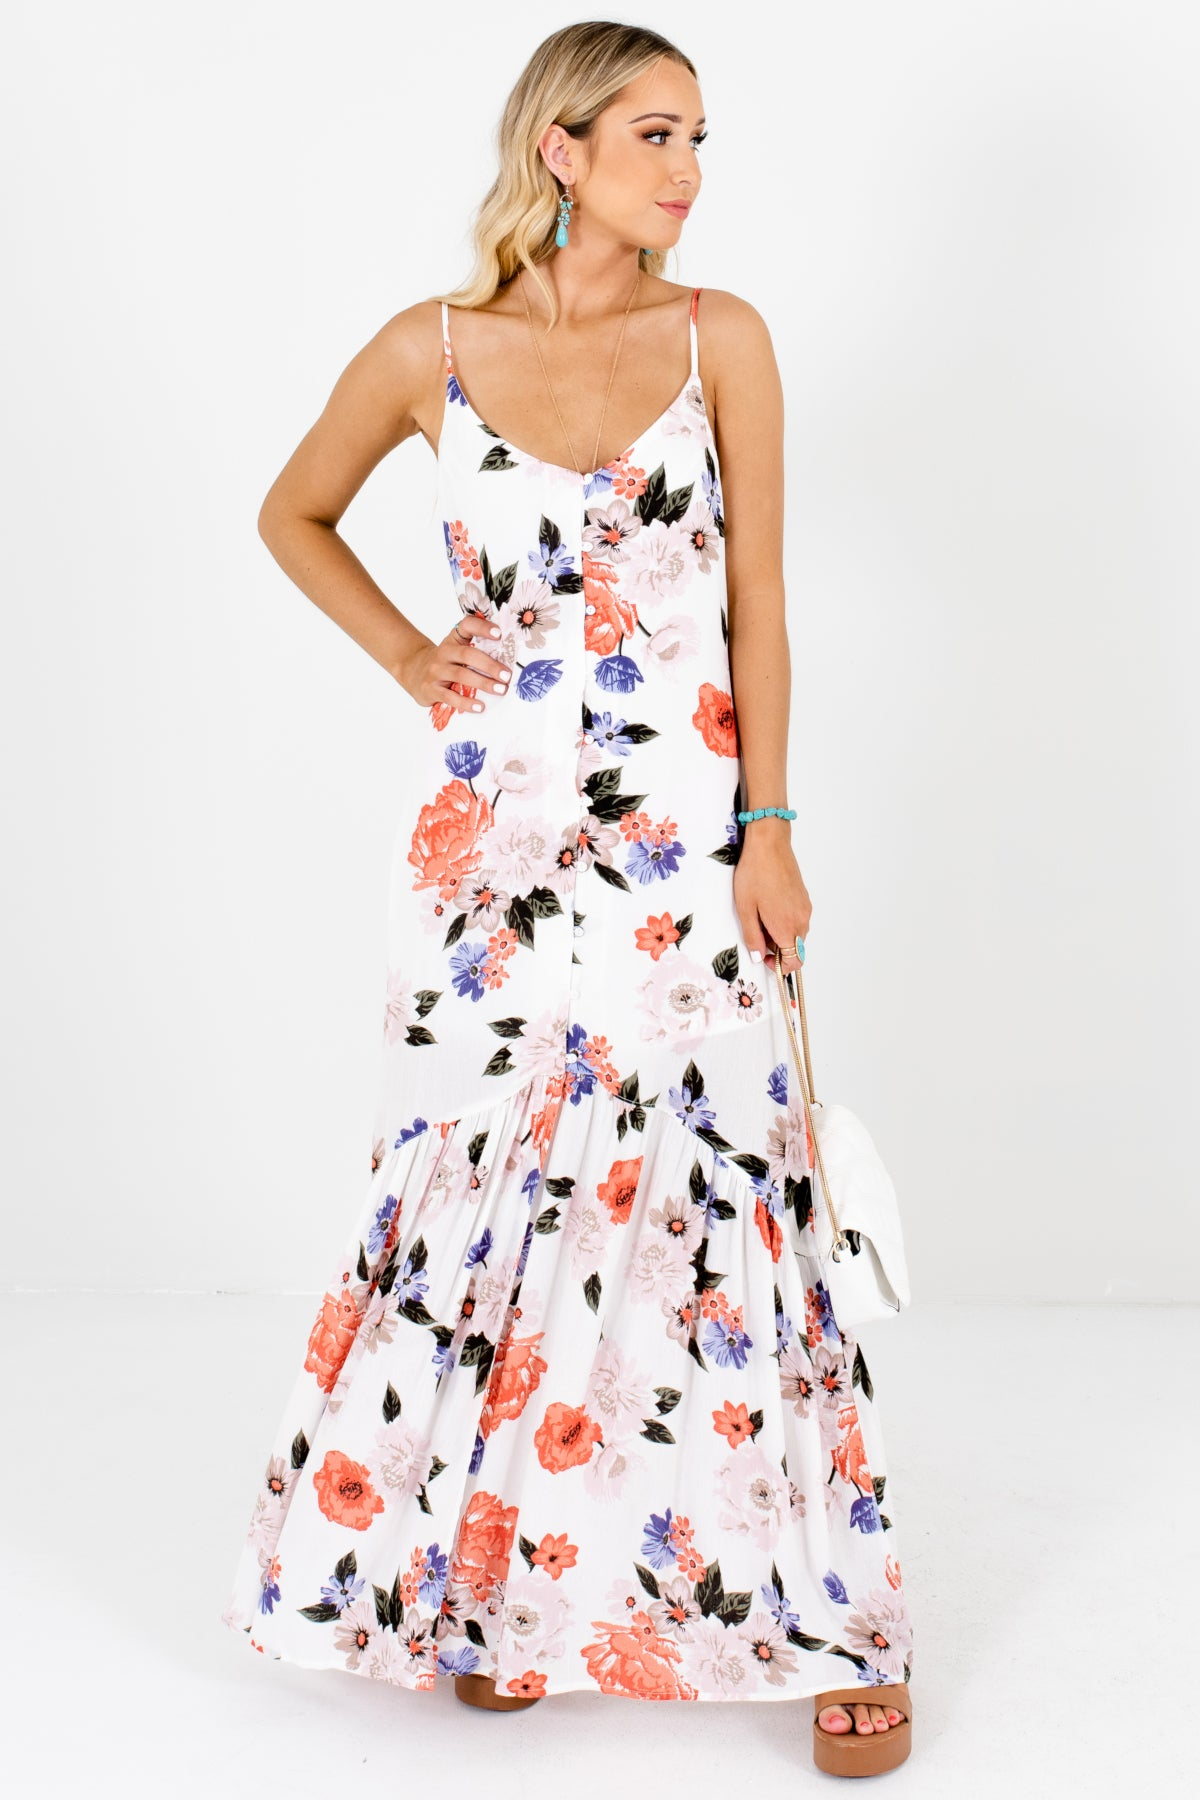 eb450544d0 White Coral Periwinkle Blush Floral Print Button-Up Maxi Dresses